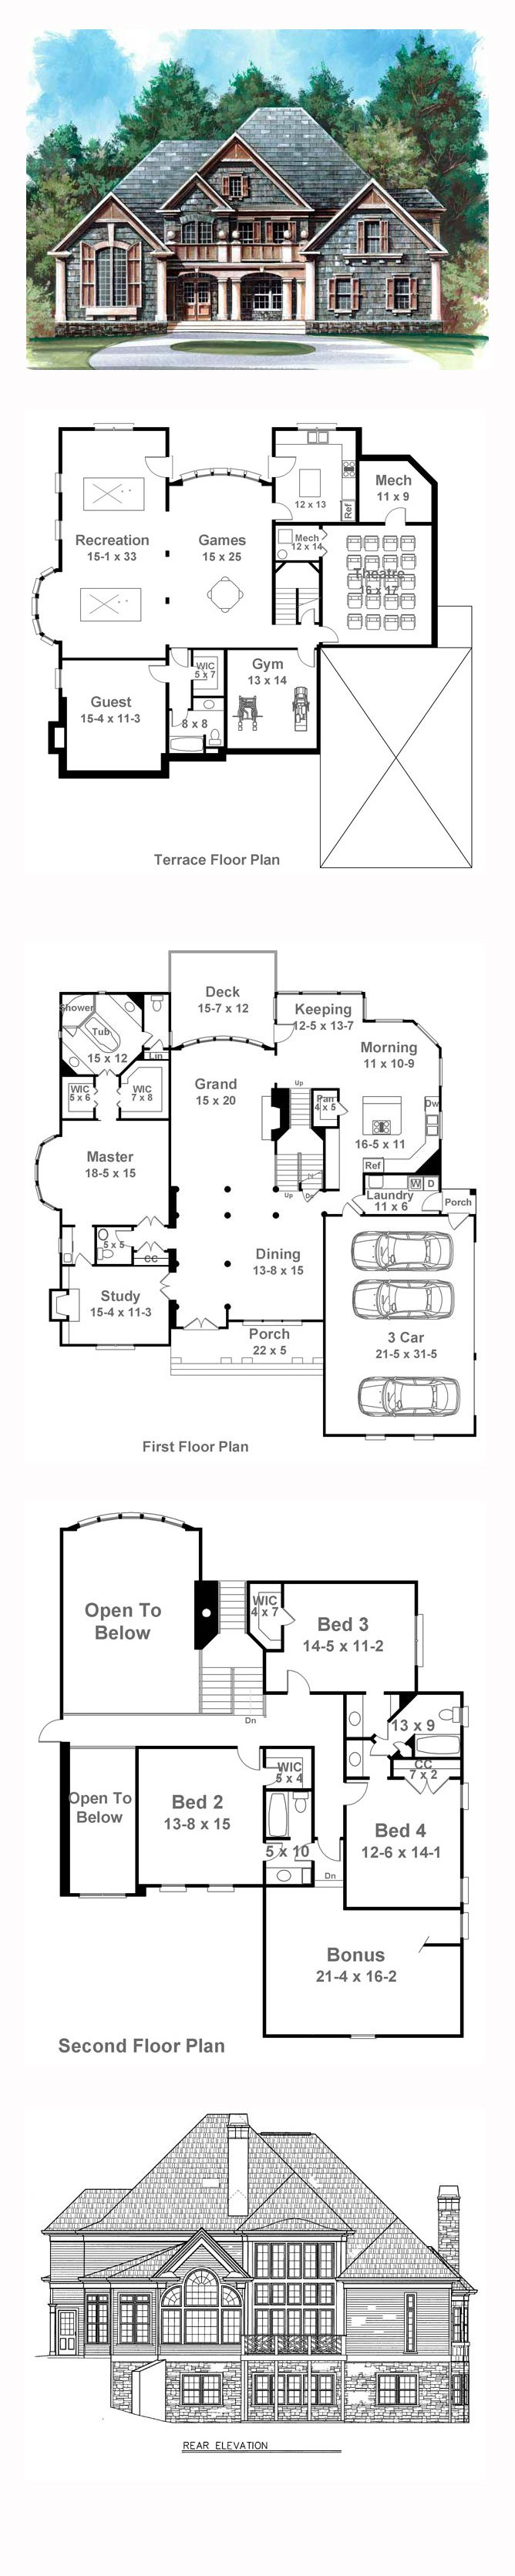 399 best large house plans images on pinterest house floor plans